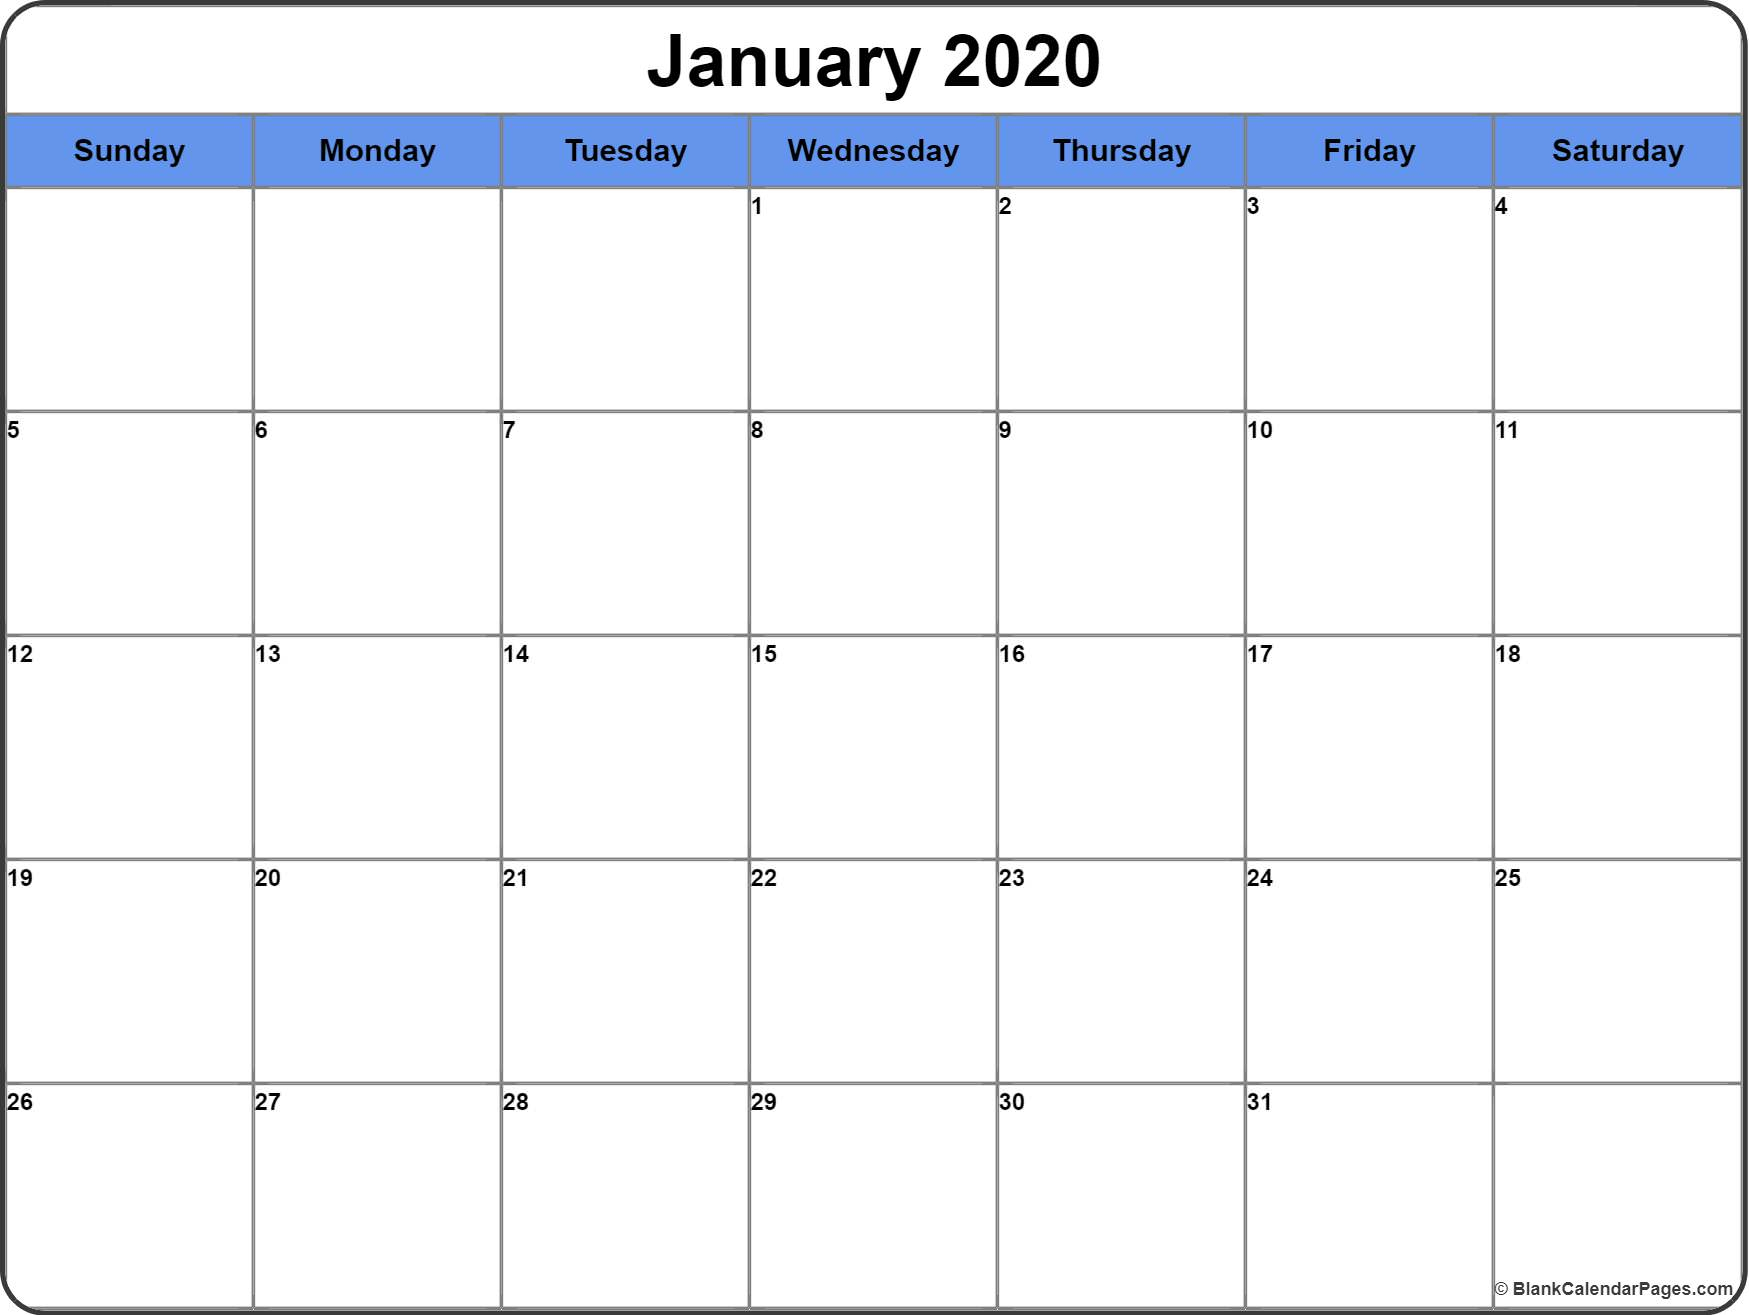 January 2020 Calendar | Free Printable Monthly Calendars in 2020 Imom Free Calendars To Print